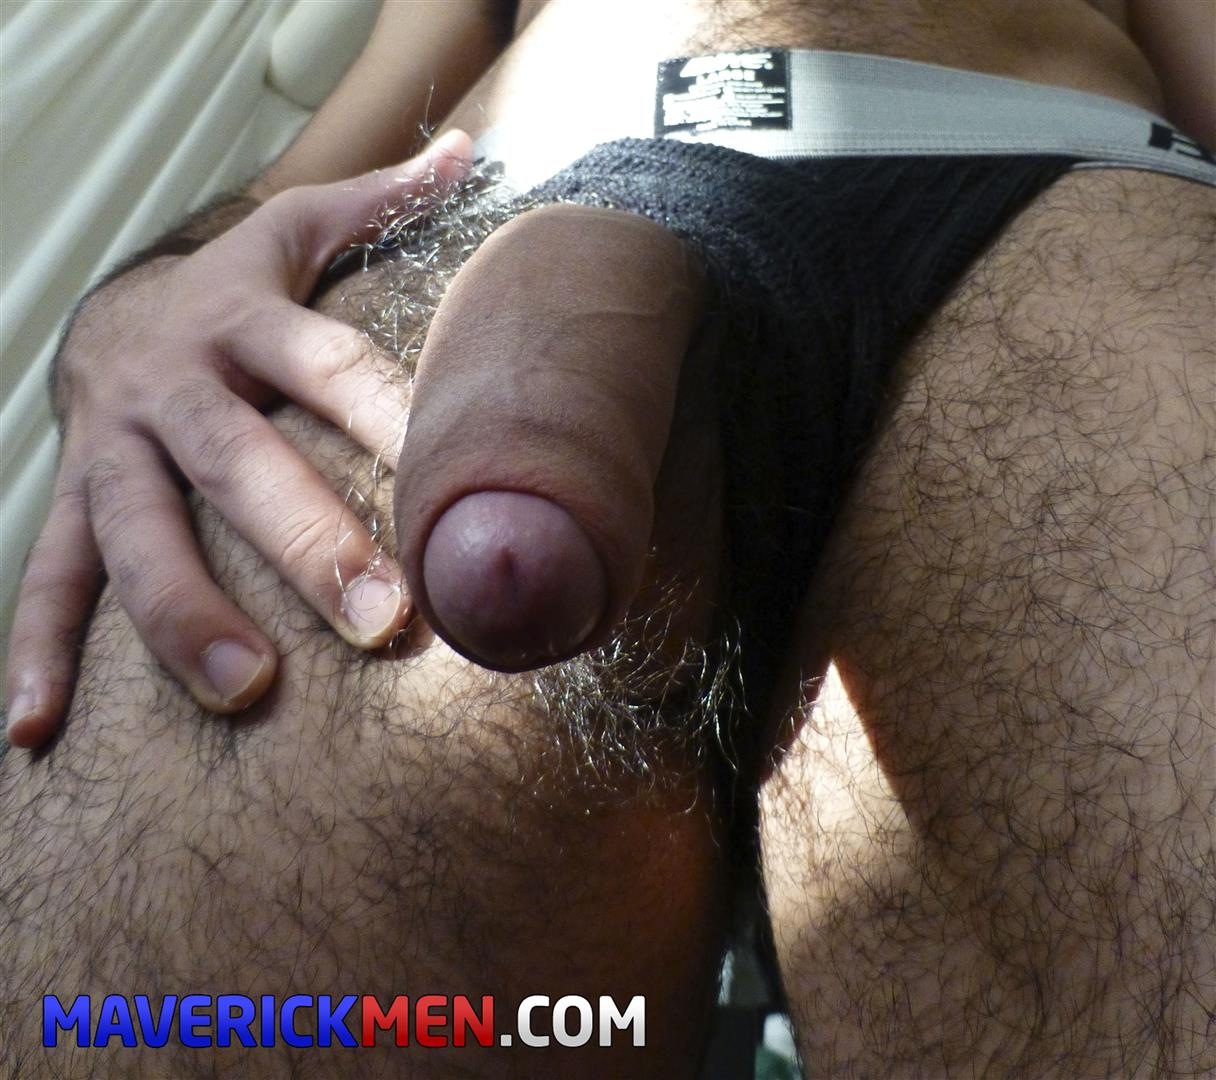 Maverick Men Little Wolf Hairy Ass Guy With A Big Uncut Cock Bareback Amateur Gay Porn 01 Breeding A Young Guy With A Hairy Ass And A Big Uncut Cock